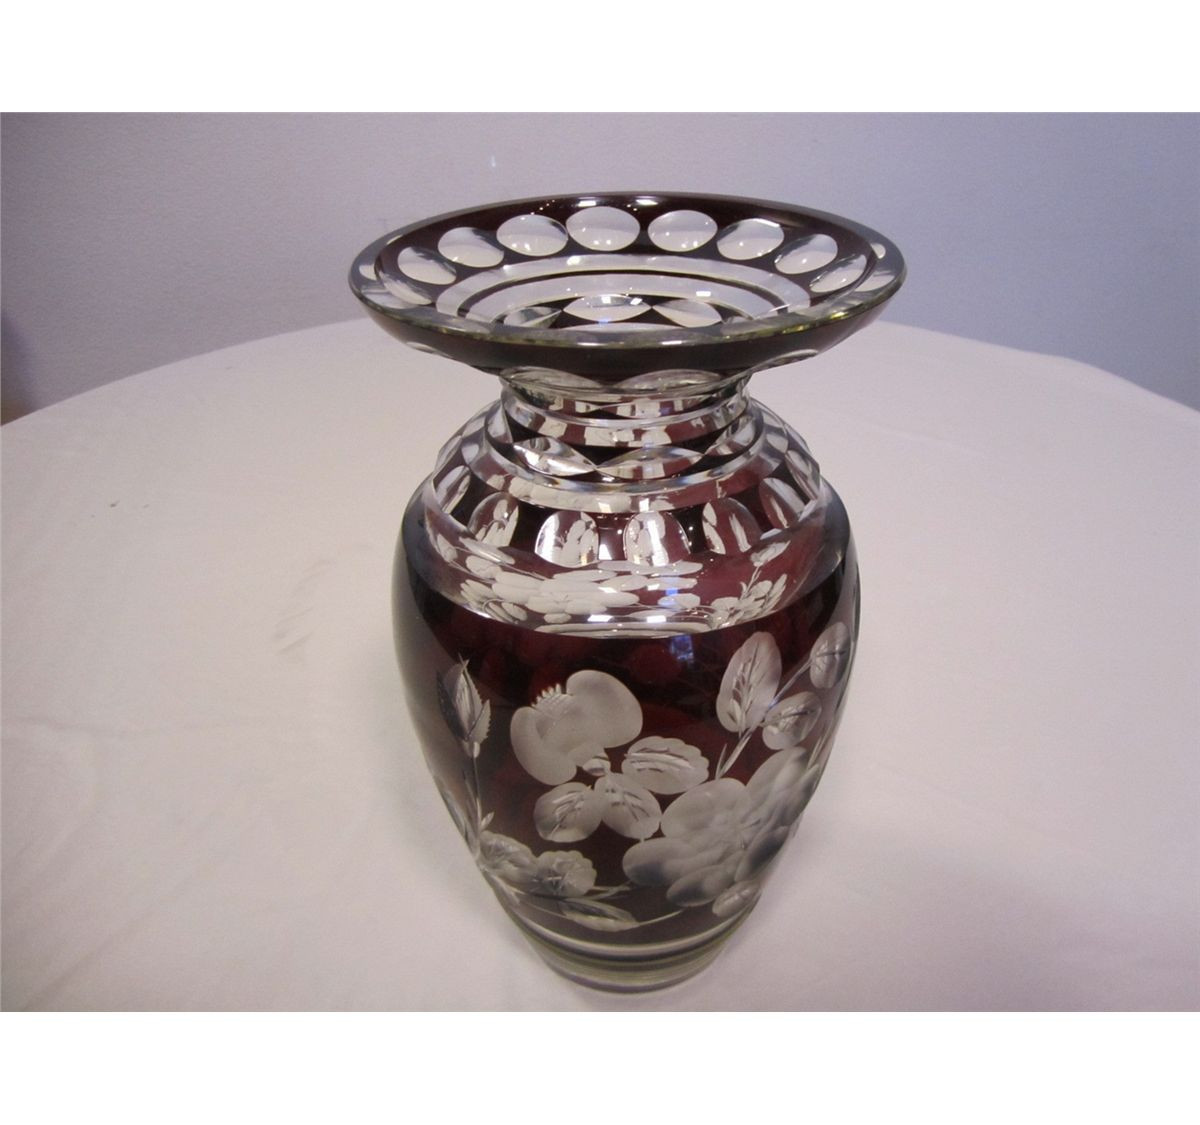 Large Vase Candle Holder Of Antique Bohemian Czech Deep Ruby Red Cut to Clear Crystal Vase 11 1 Intended for Antique Bohemian Czech Deep Ruby Red Cut to Clear Crystal Vase 11 1 2 Tall